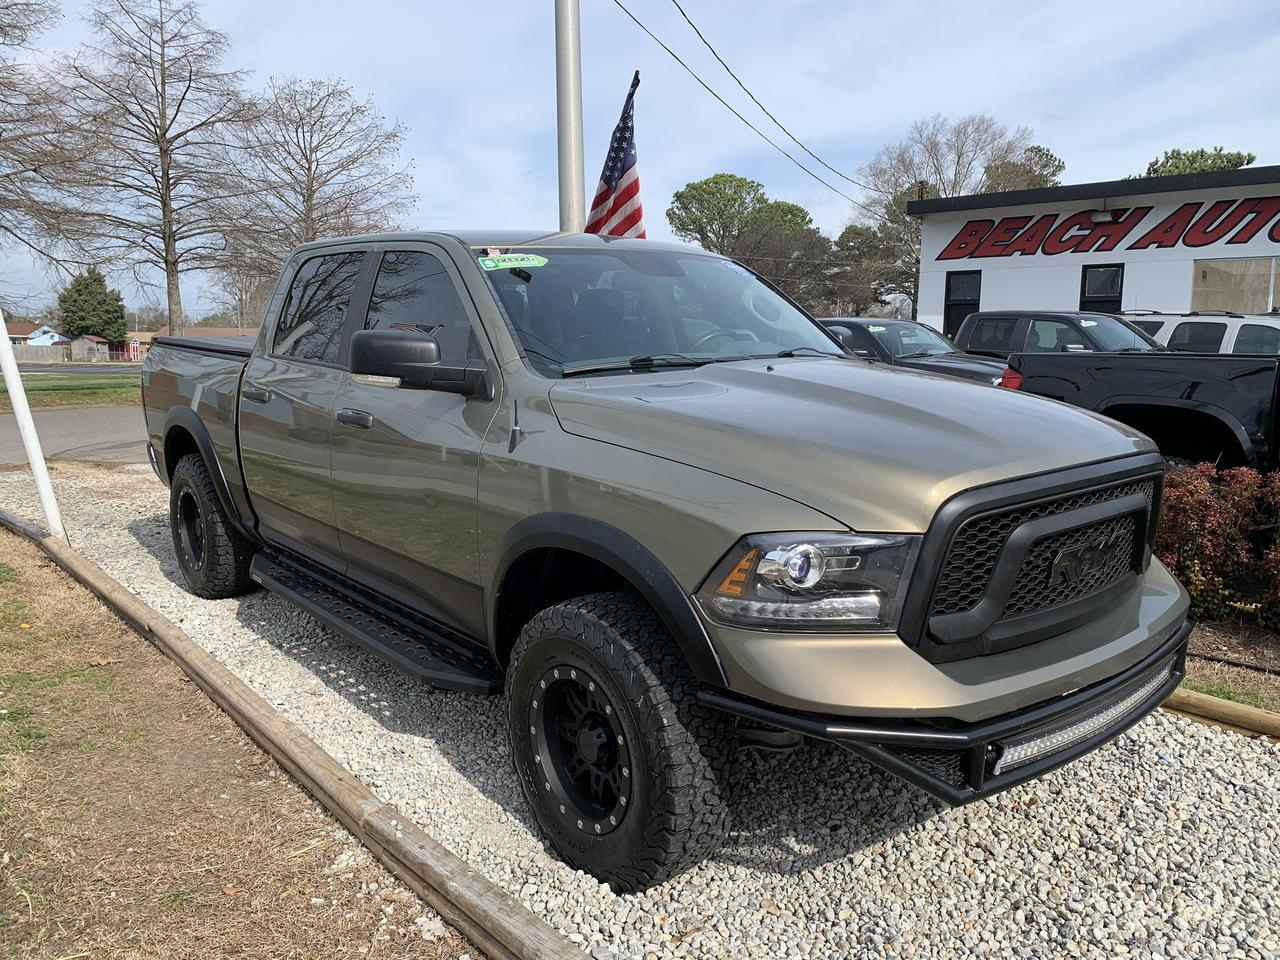 2015 DODGE RAM 1500 SLT CREW CAB 4X4, WARRANTY, HEATED SEATS, ONSTAR NAV, BLUETOOTH, ONSTAR, BACKUP CAM, BLUETOOTH! Norfolk VA